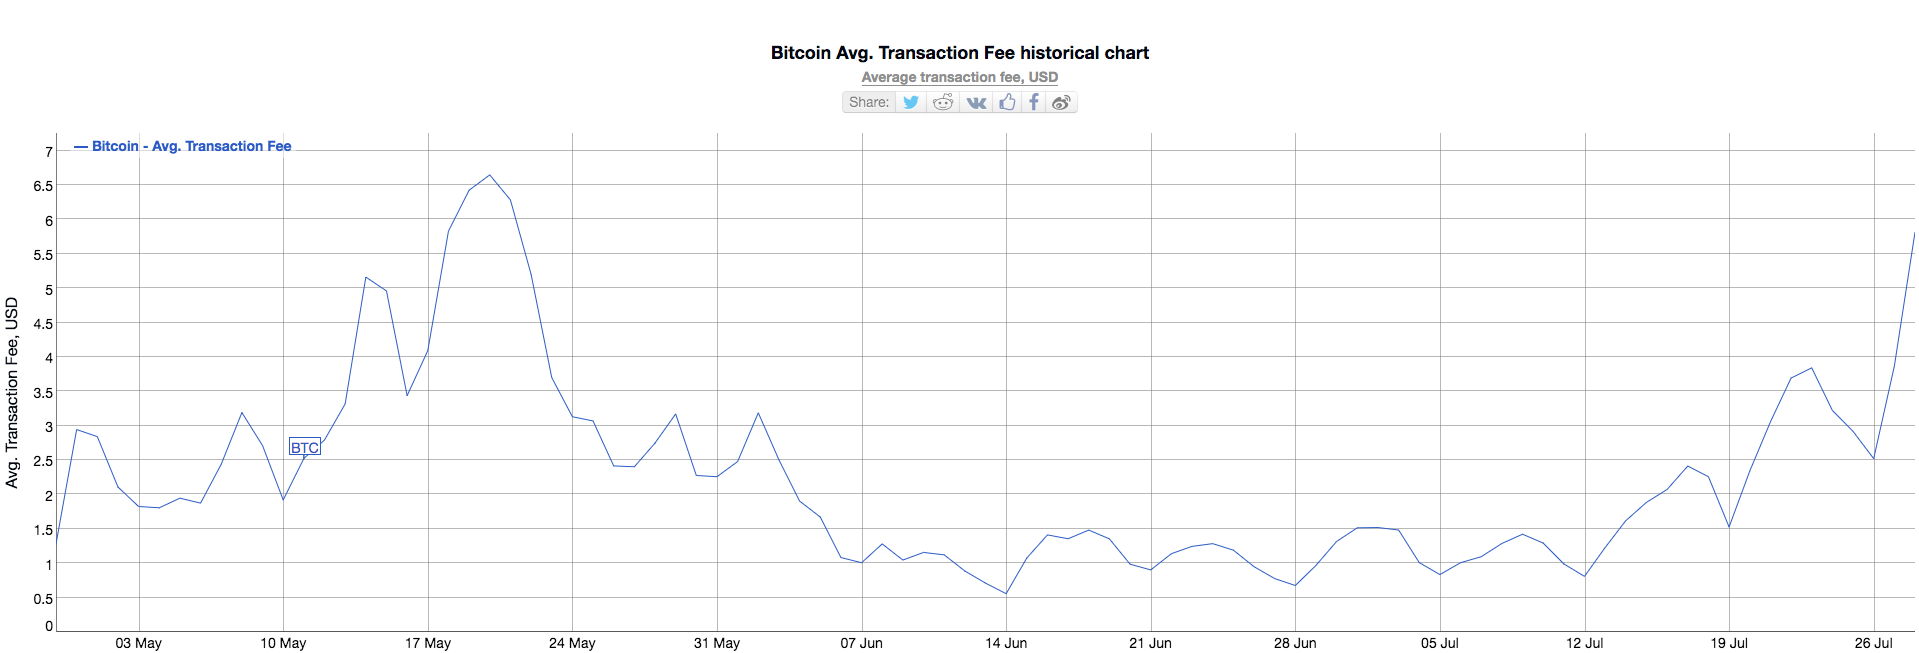 Bitcoin fees are up